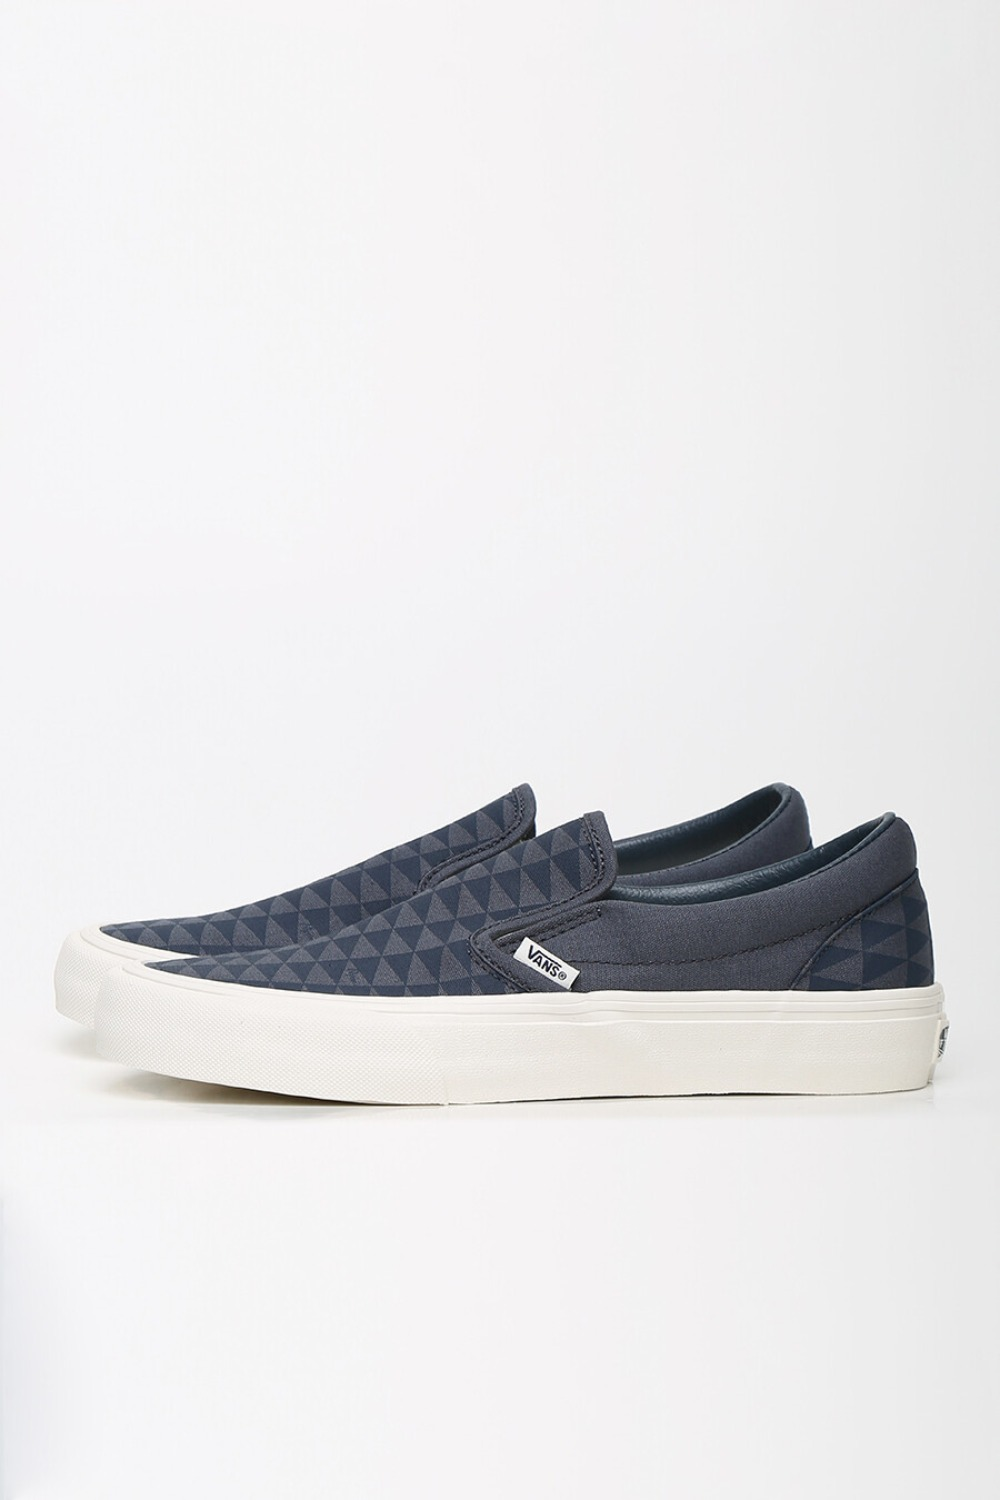 (PILGRIM)CLASSIC SLIP-ON SF